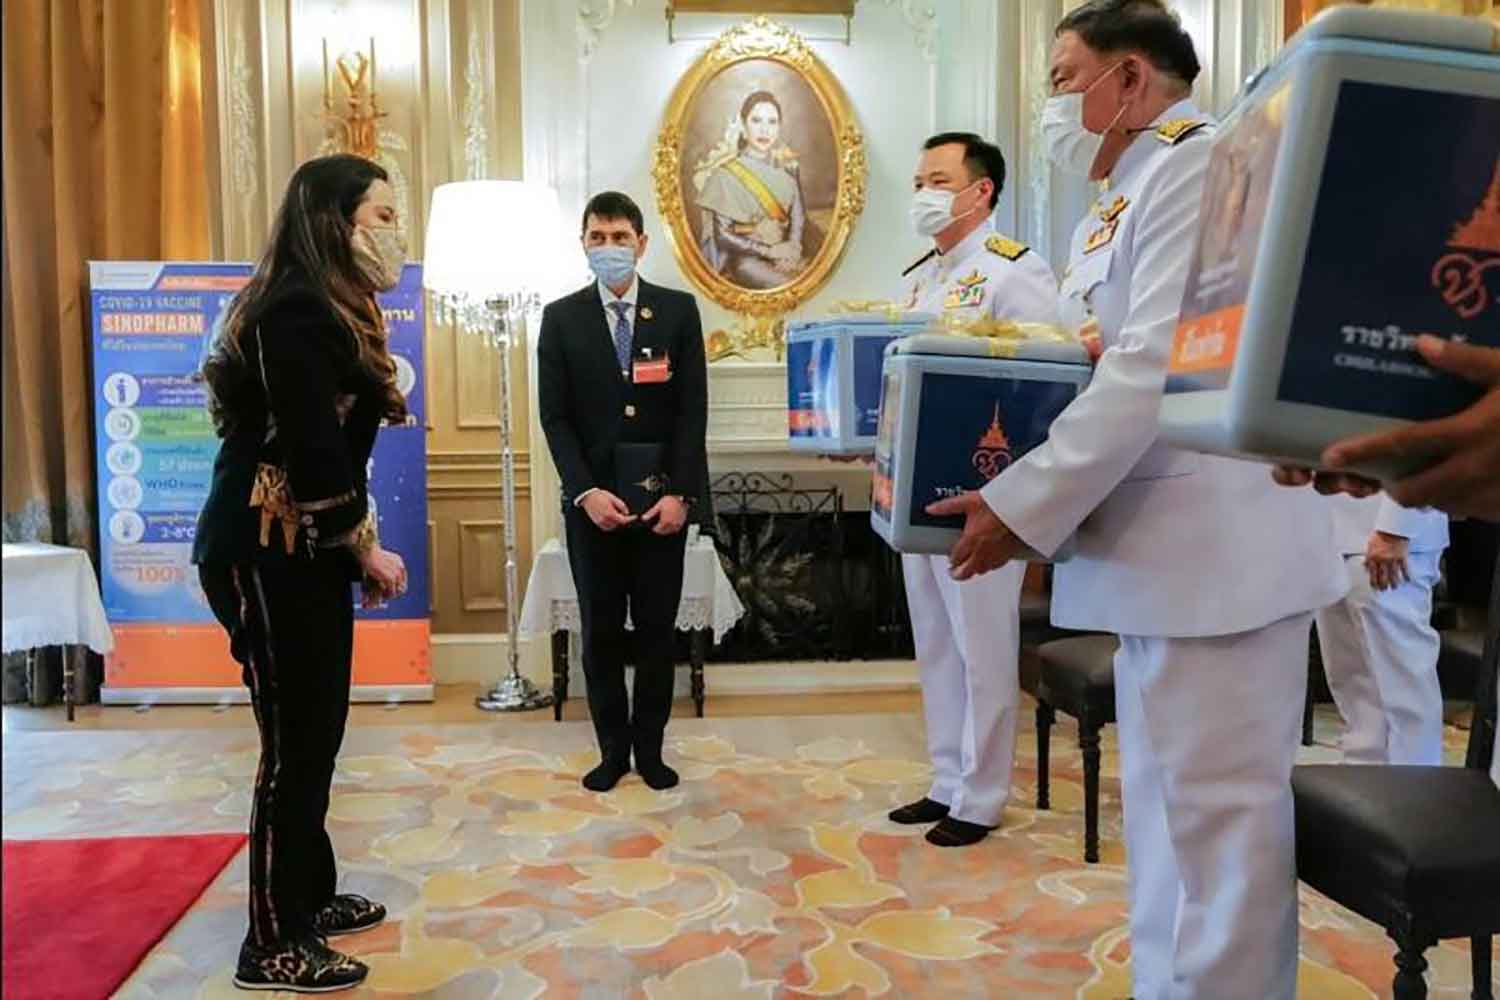 Her Royal Highness Princess Chulabhorn Krom Phra Srisavangavadhana provides 25,600 doses of Sinopharm vaccine to the Public Health Ministry, City Hall, the Department of Corrections and the Chulabhorn Hospital to mark the Princess's 64th birthday on July 4. (Photo from the Bangkok Metropolitan Administration)